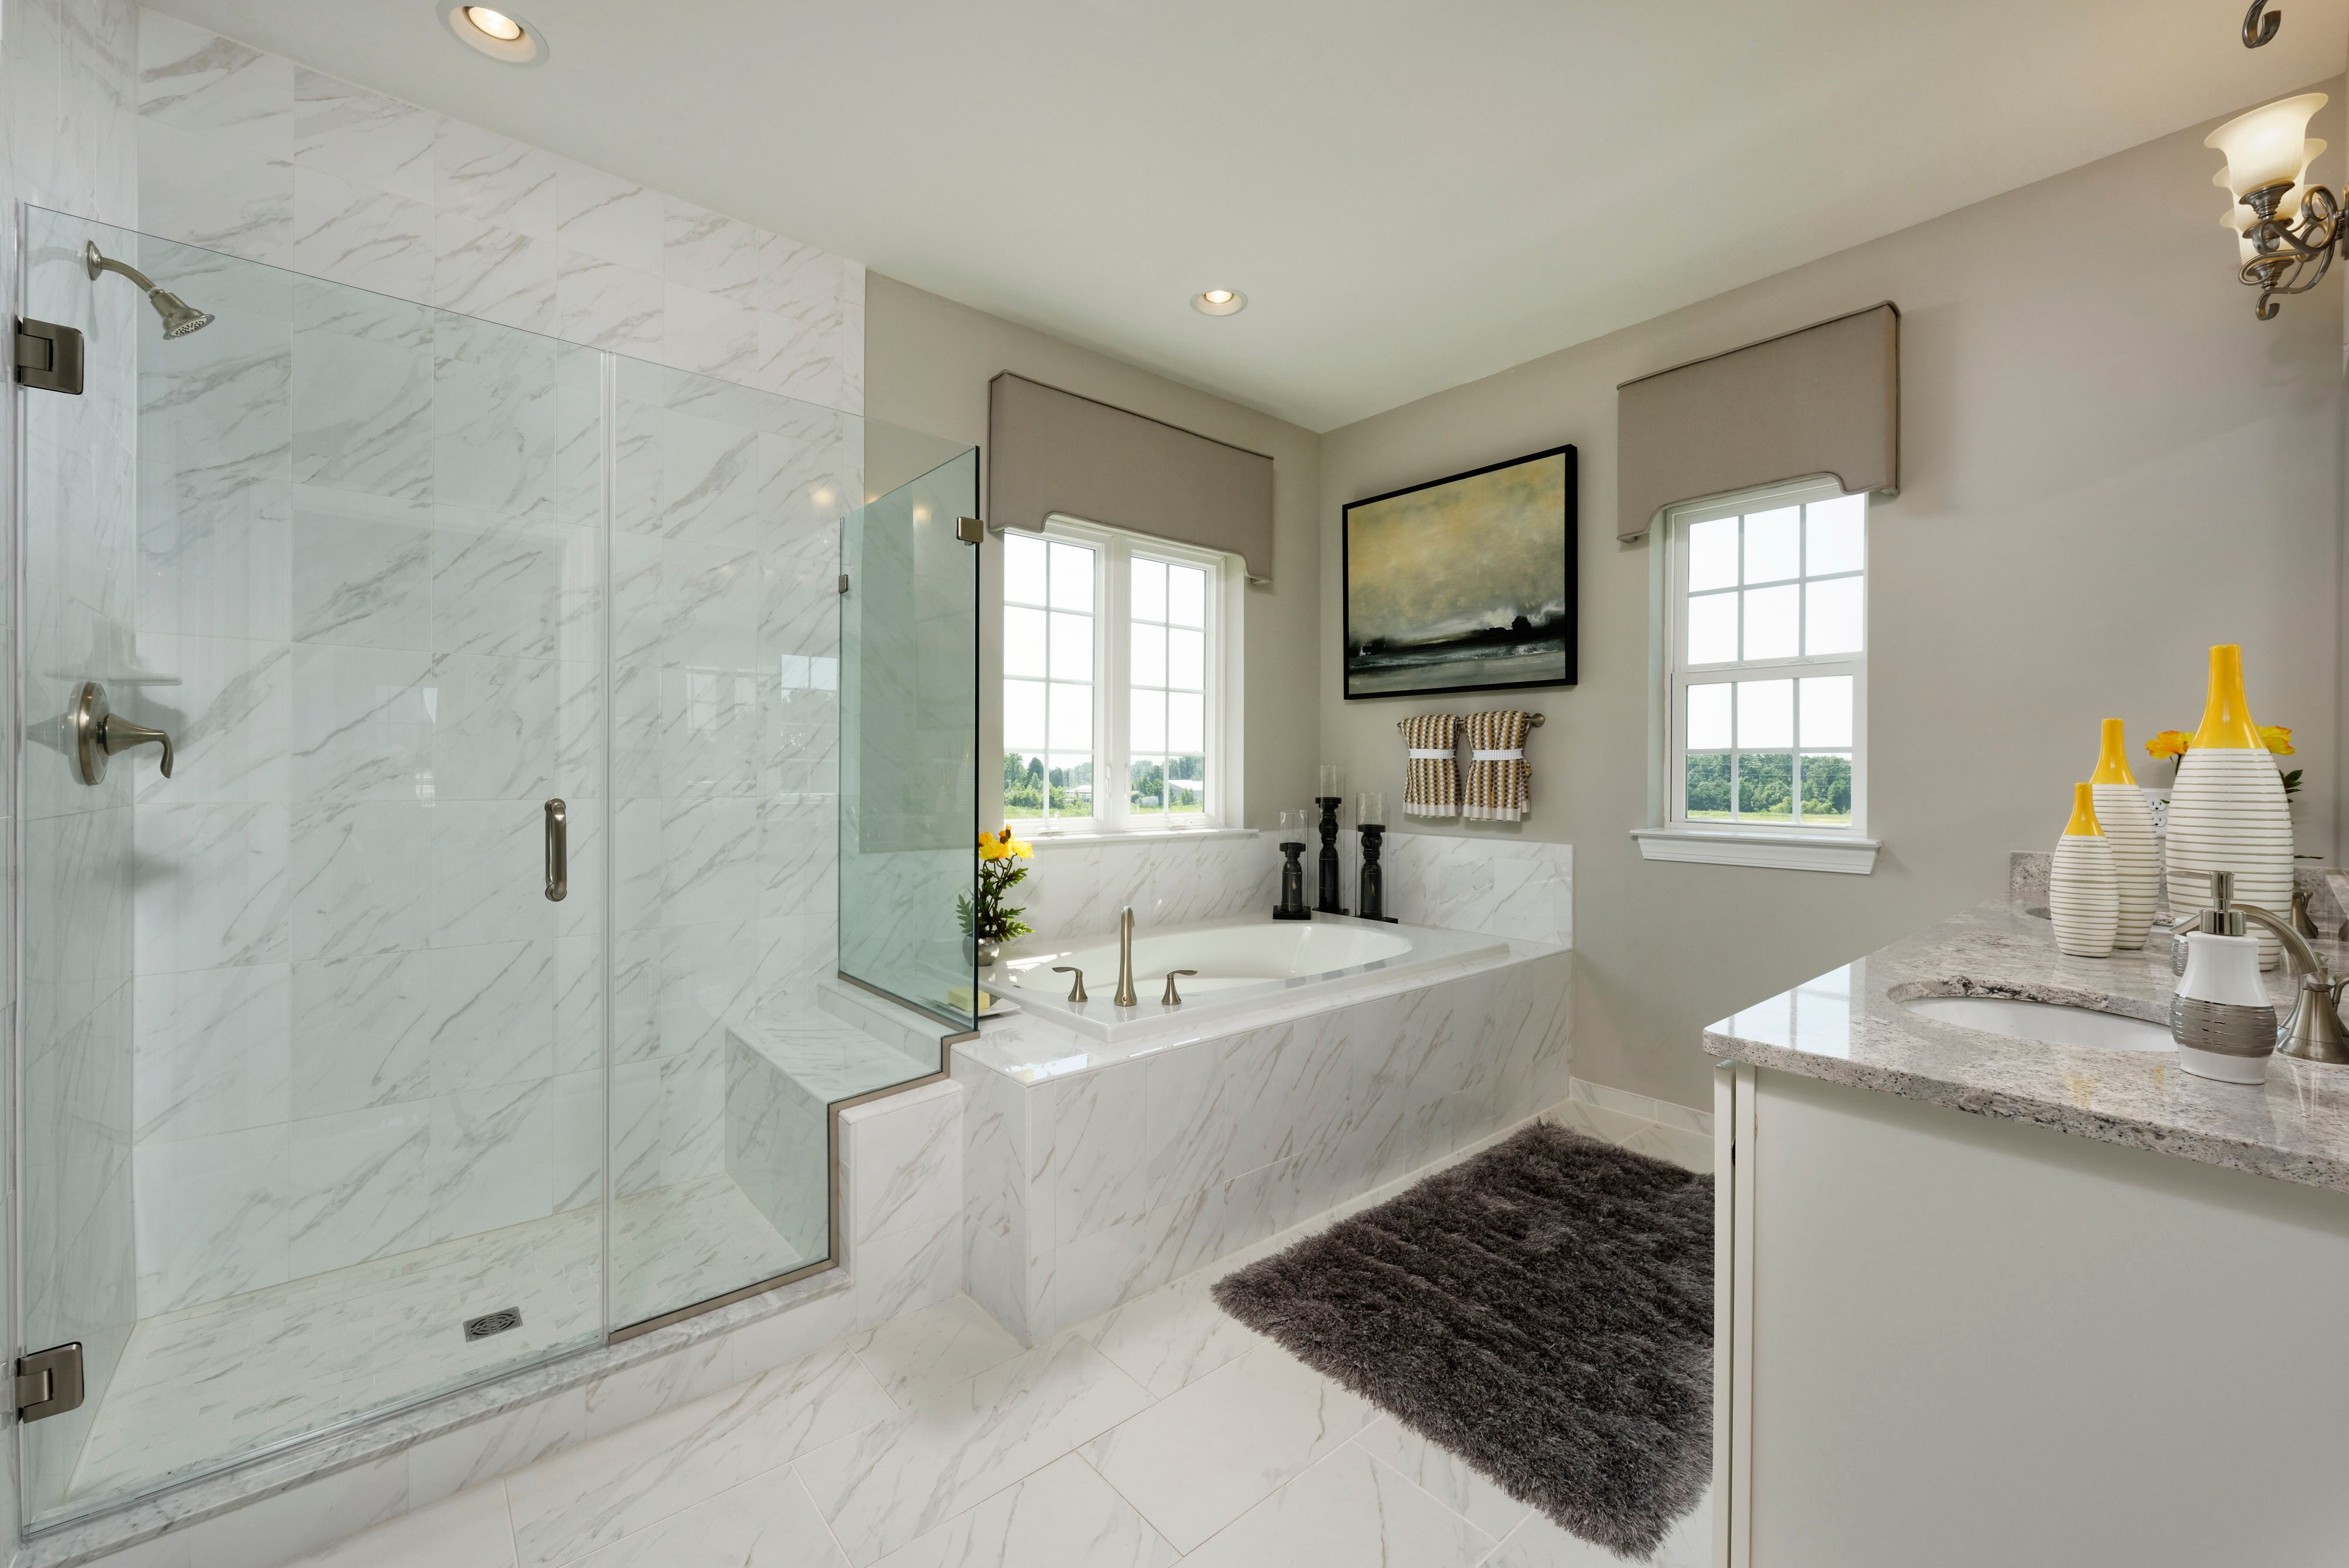 Bathroom featured in the Federal Hill By Williamsburg Homes LLC in Baltimore, MD